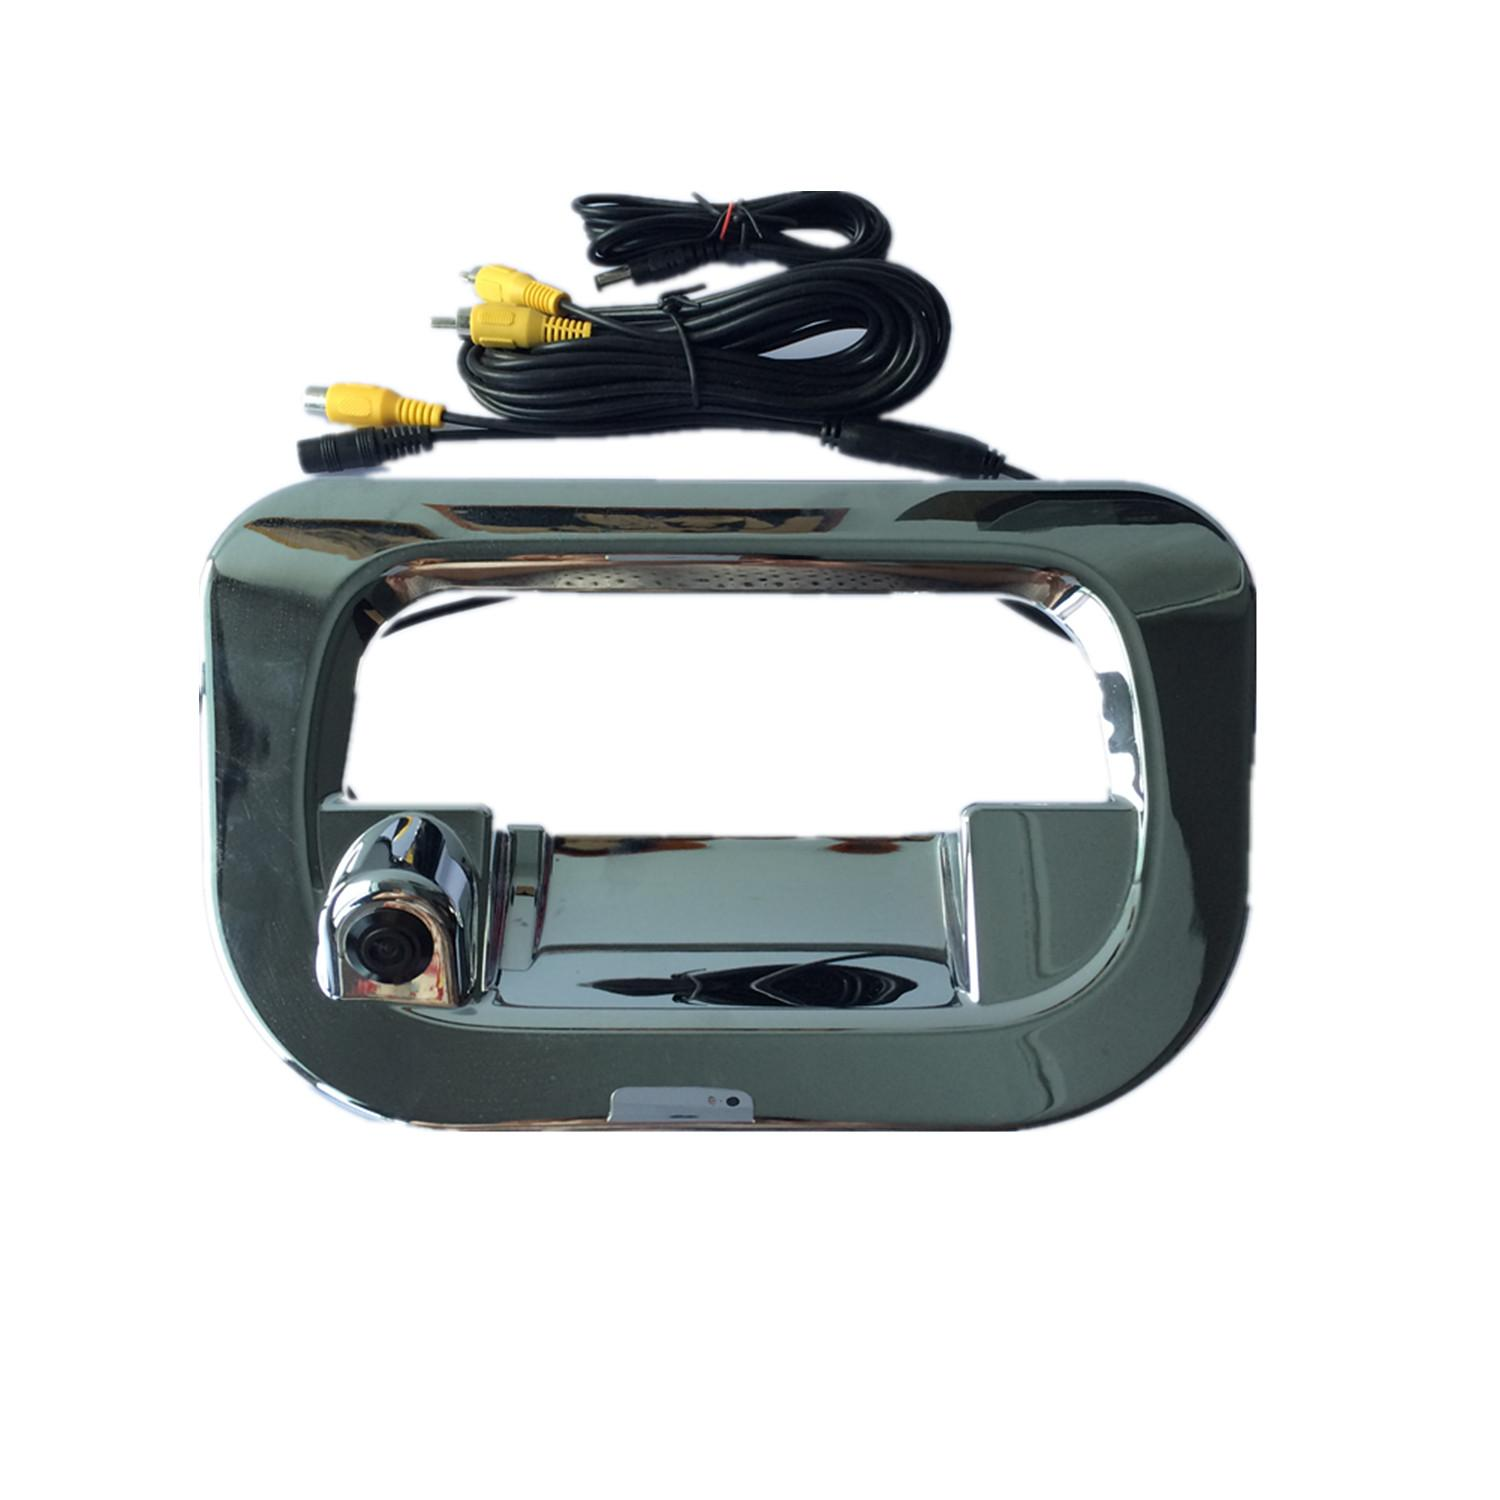 2018 Car Wide Angle Tailgate Cover Rear View Reverse Camera For Toyota Hilux  Vigo Year Of 2008 2009 2010 2011 2012 2013 2014 2015 From Miffy6855, ...